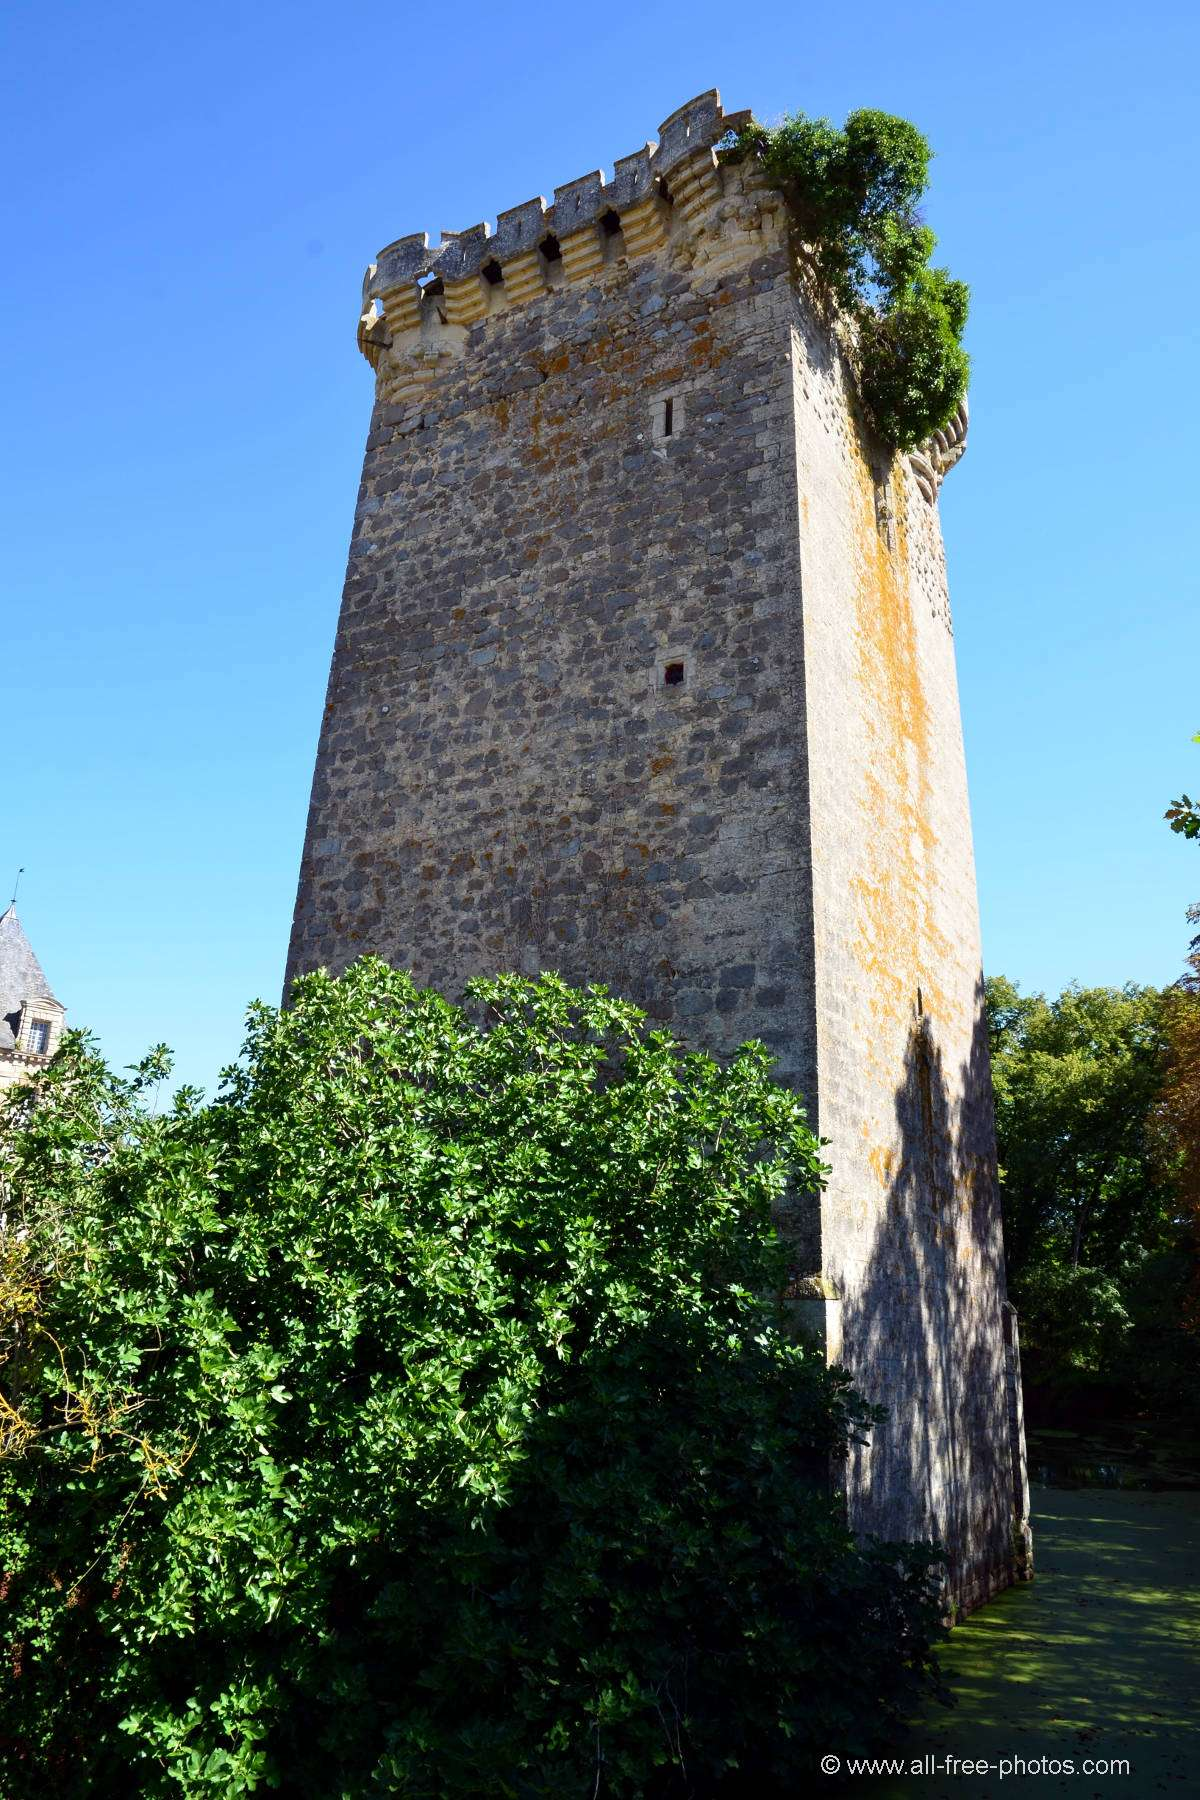 Tower of Saint-Loup-Lamairé